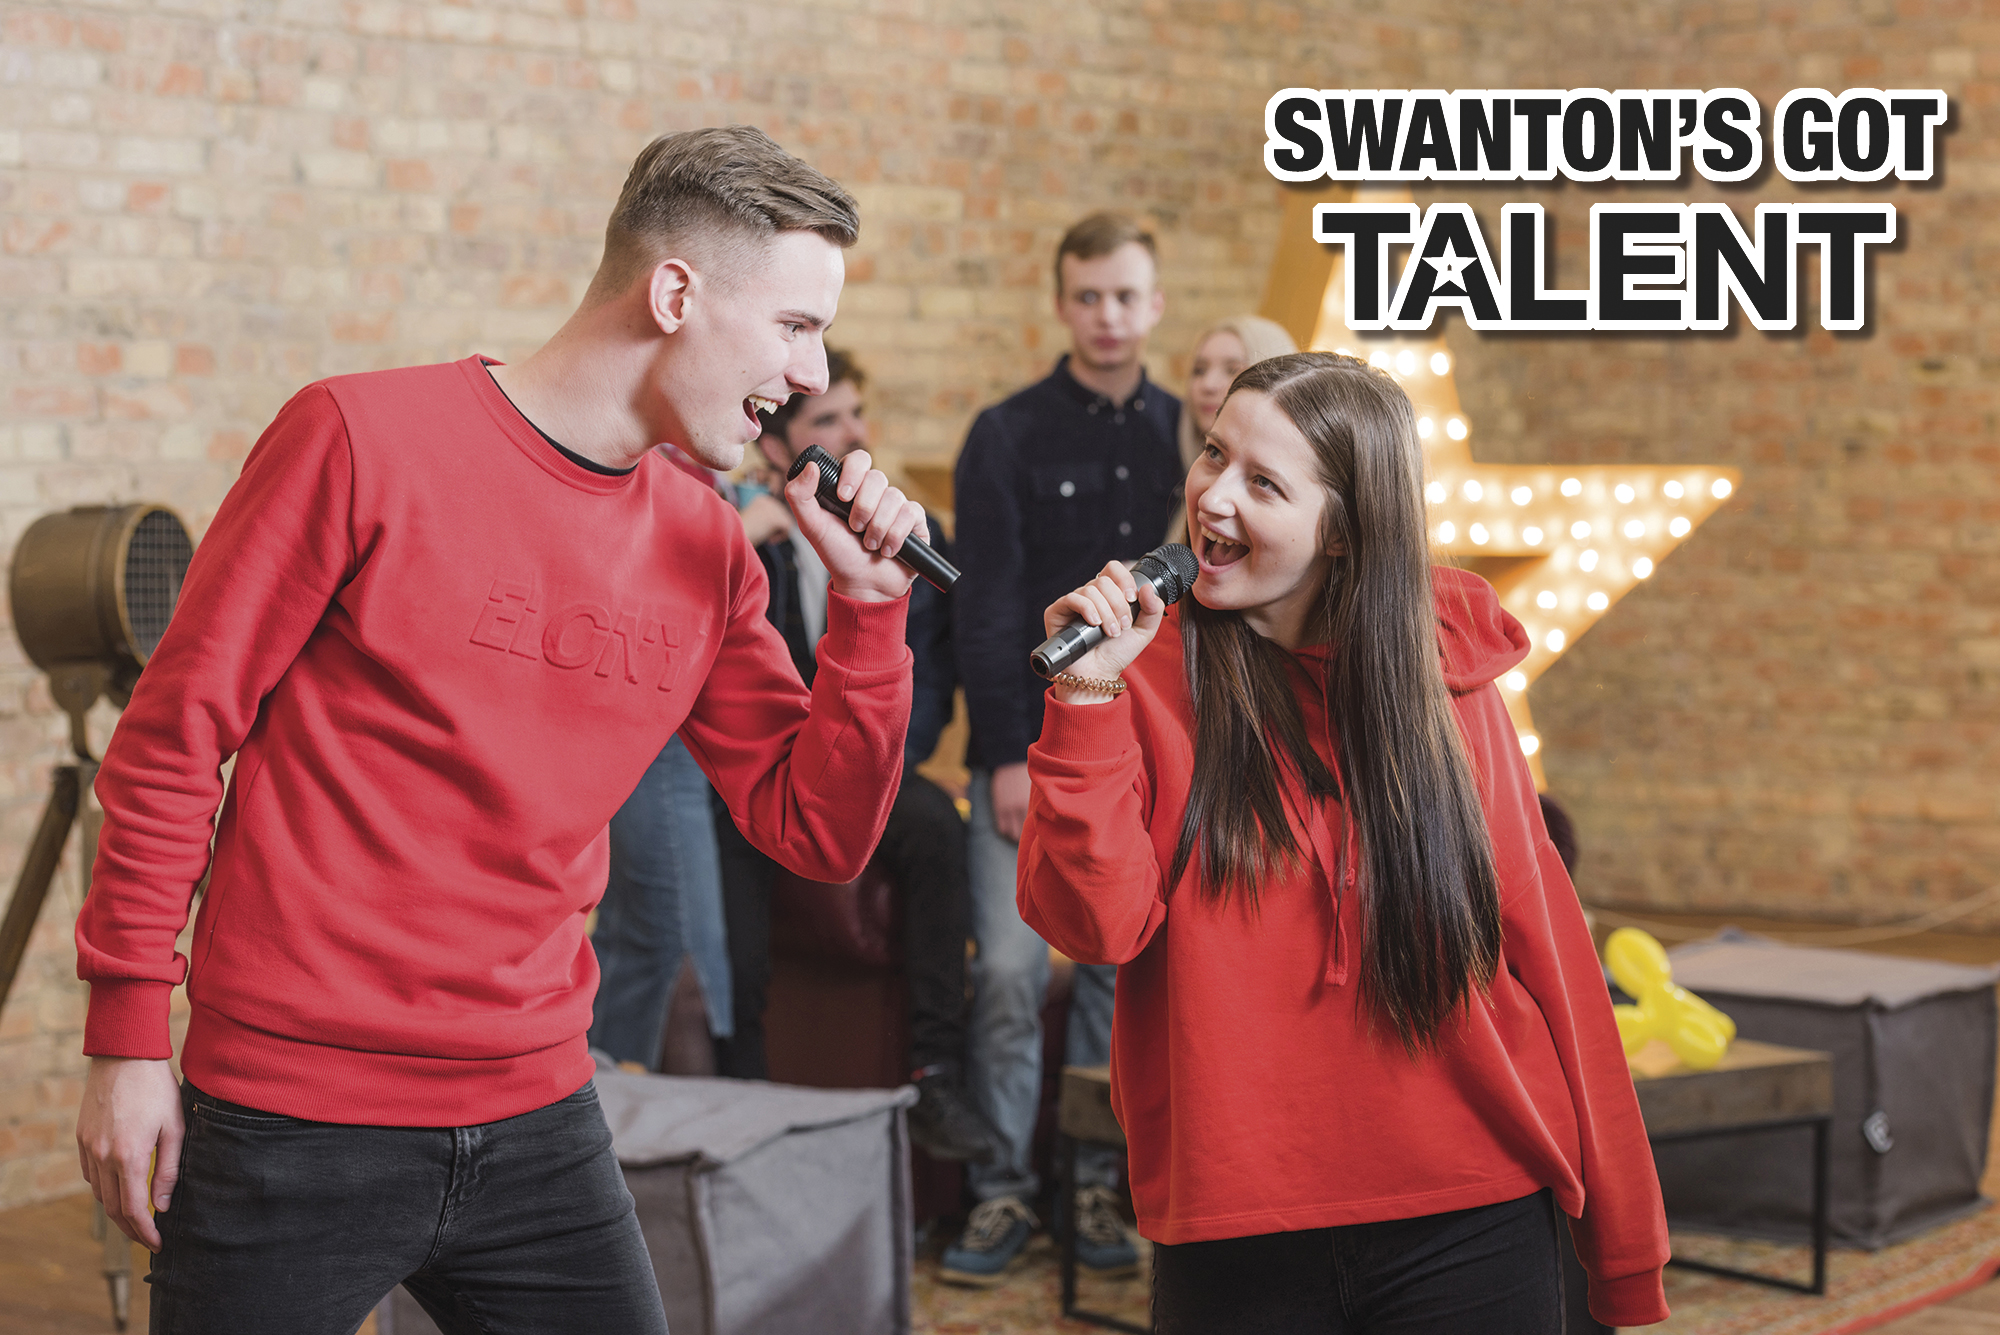 Swanton's Got Talent